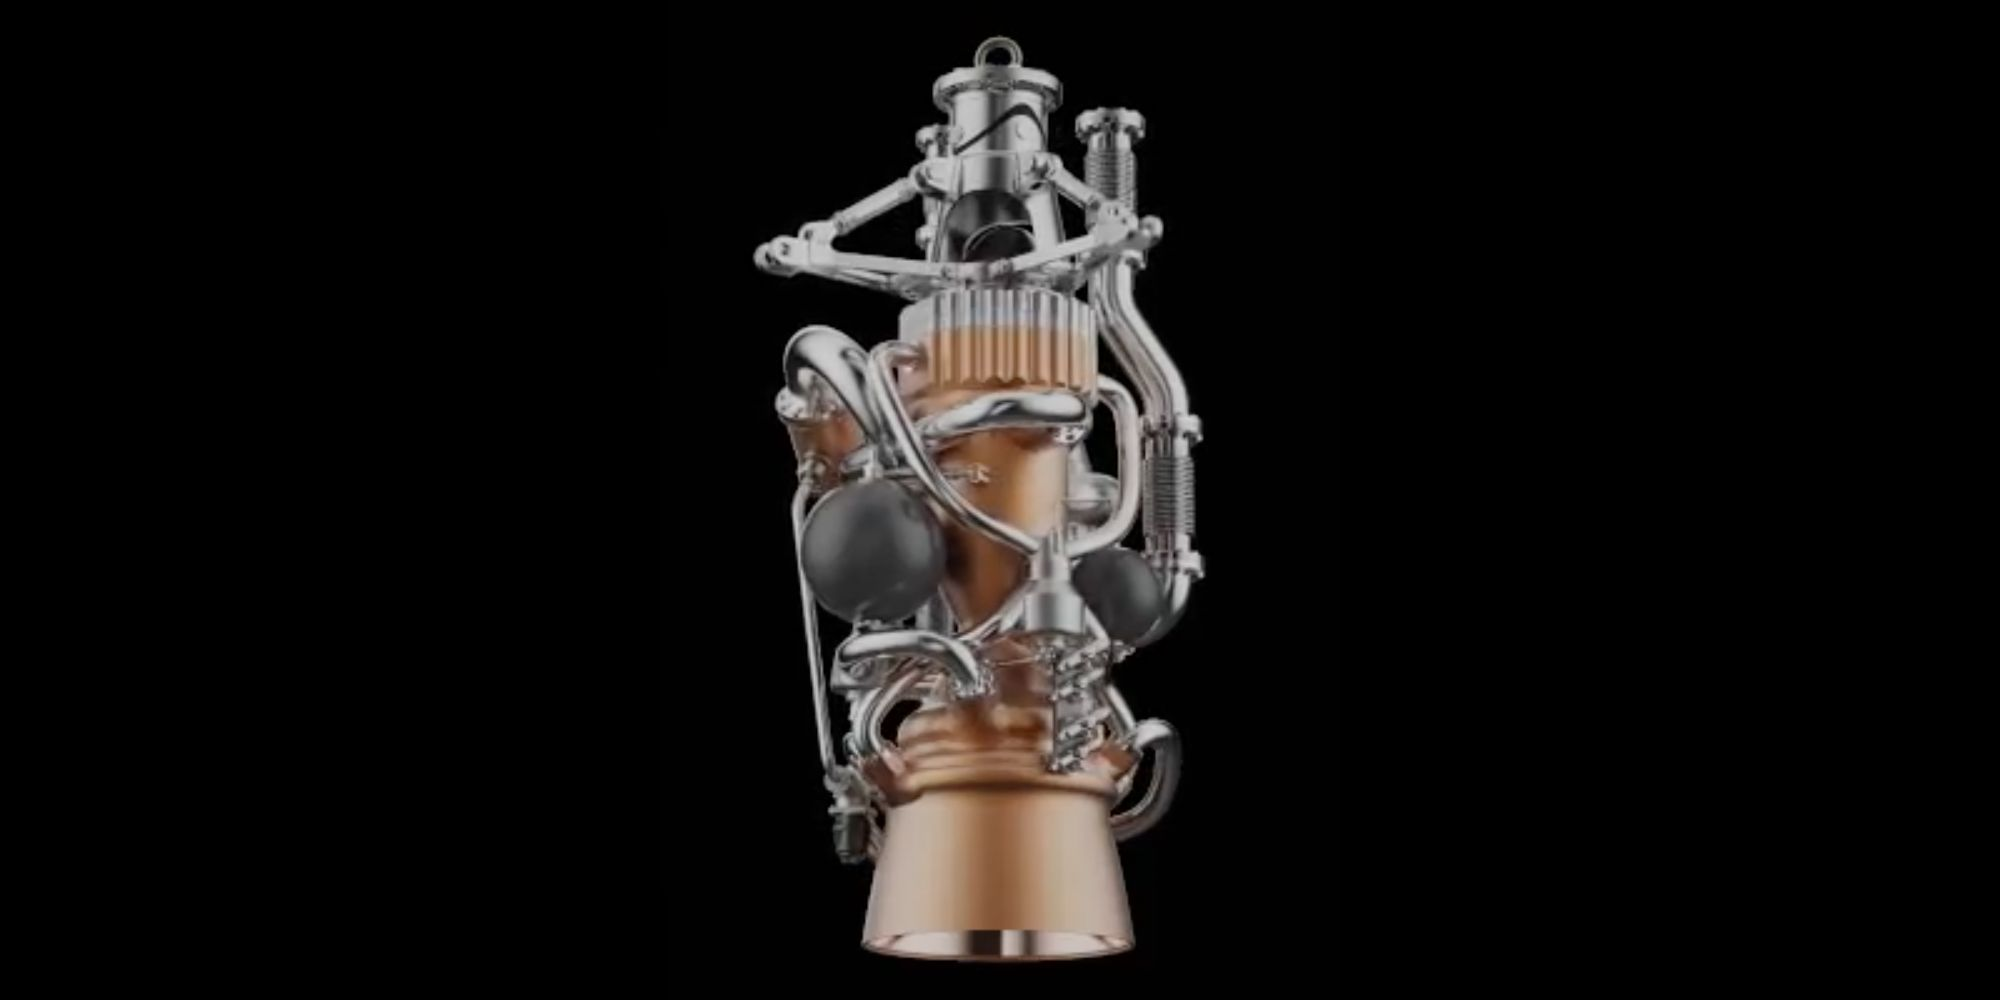 You Can Make a Rocket Engine's Entire Combustion Chamber in One 3D Print